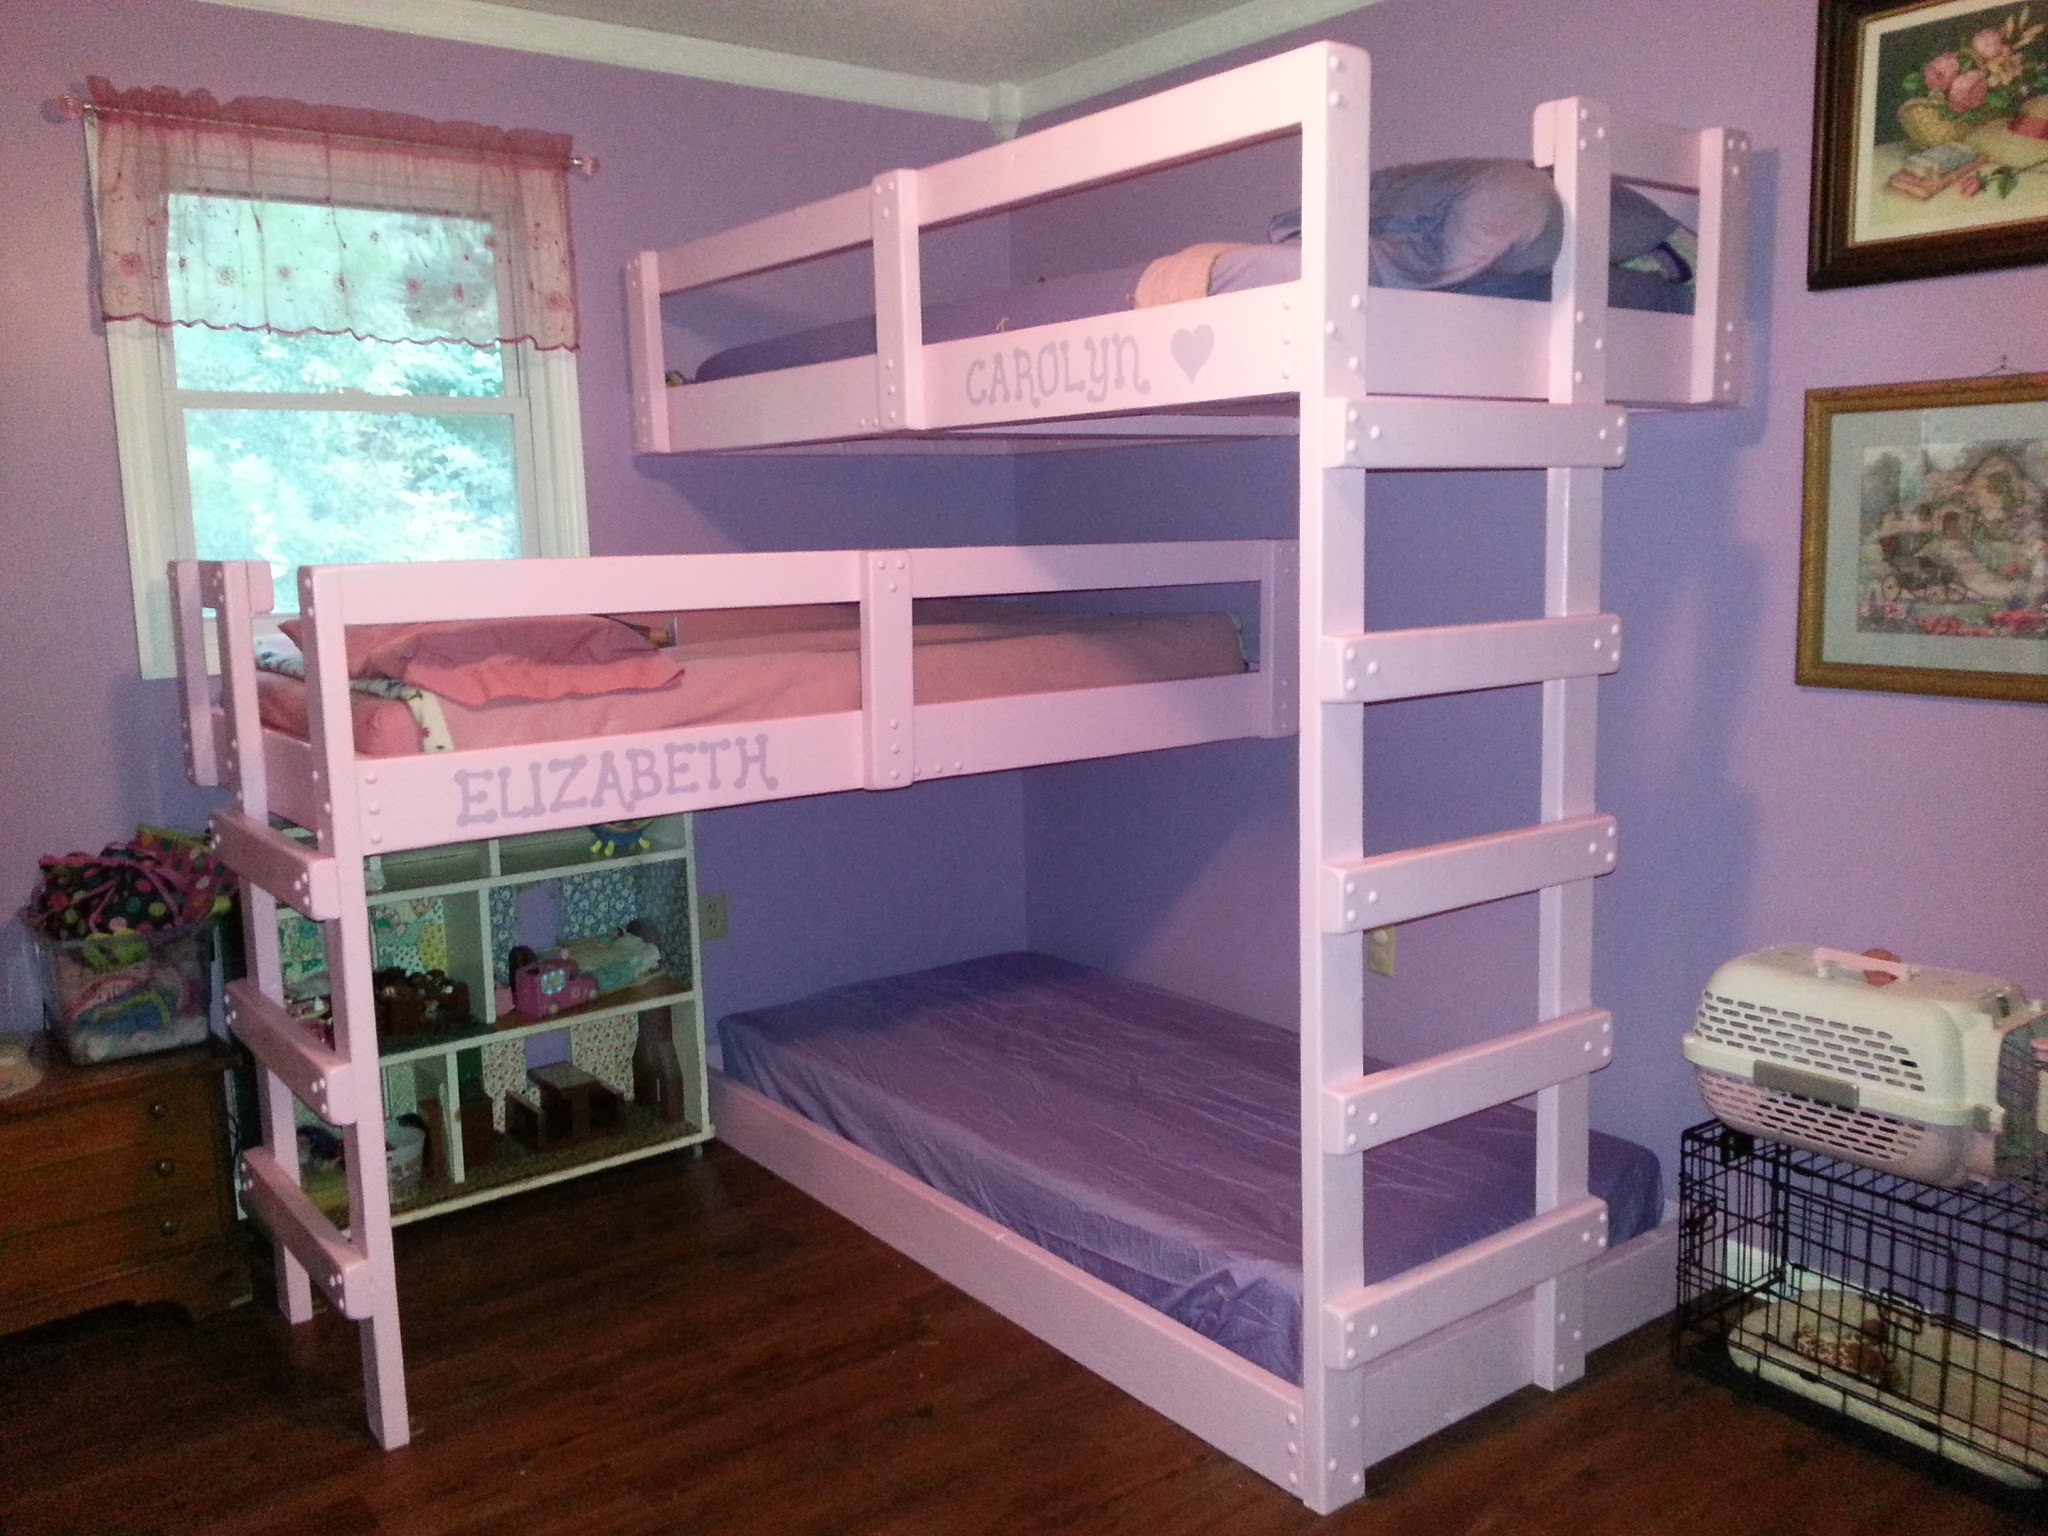 Twin Bed Space Saver | Bunk Beds Teenager | Bunk Beds for Small Rooms